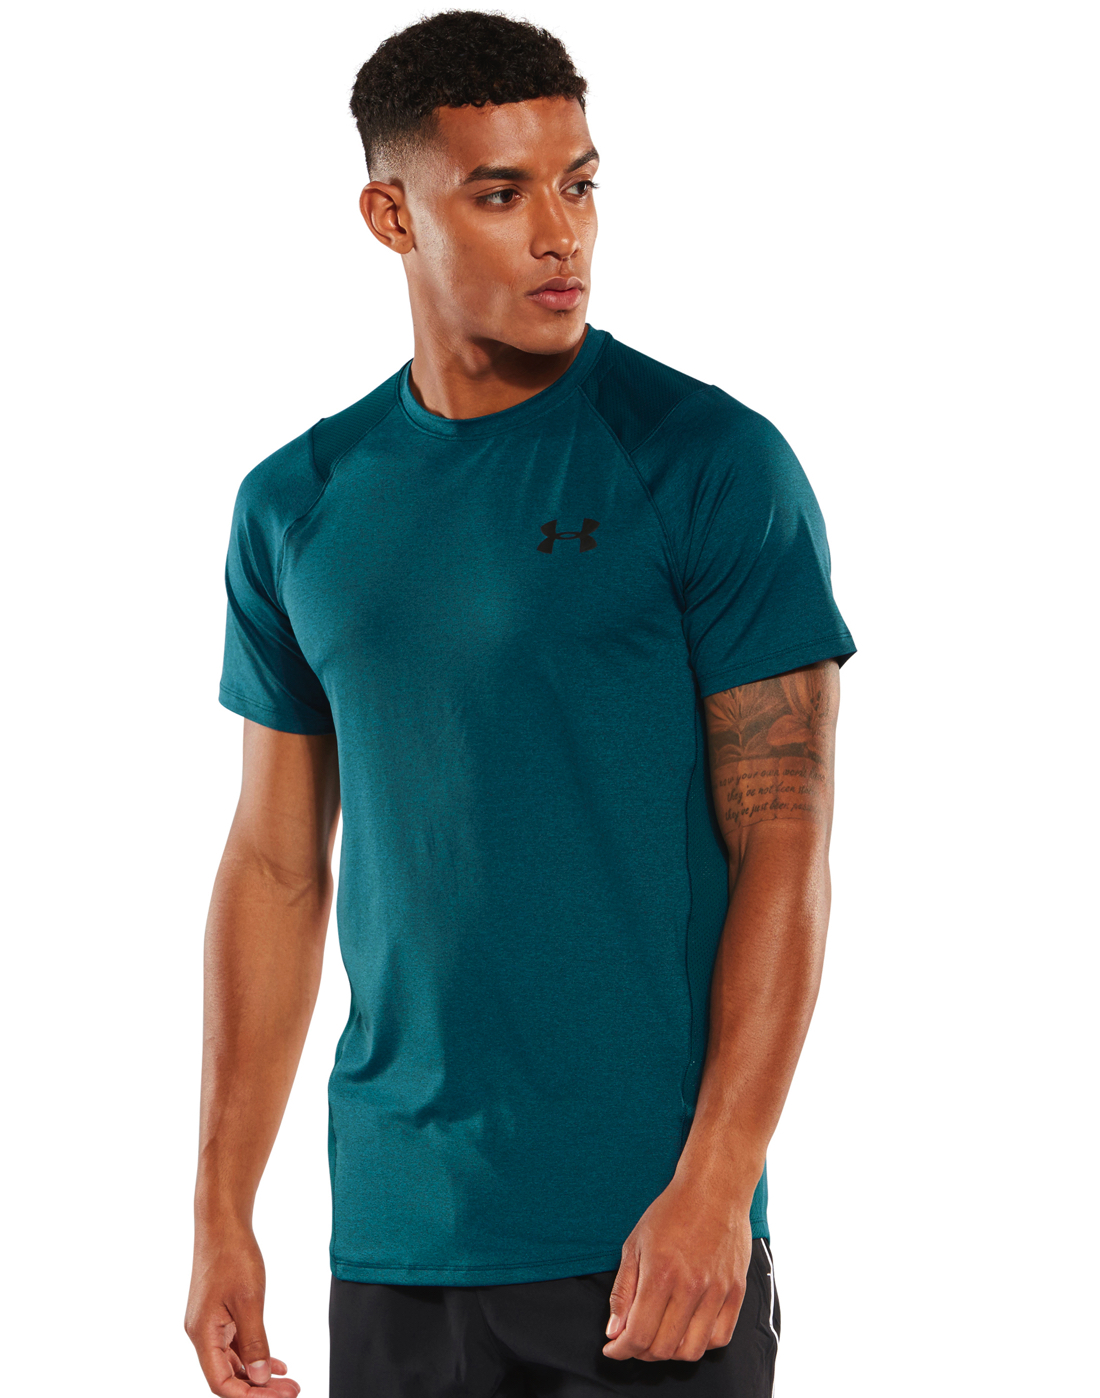 8085002c Men's Blue Under Armour MK1 T-Shirt | Life Style Sports